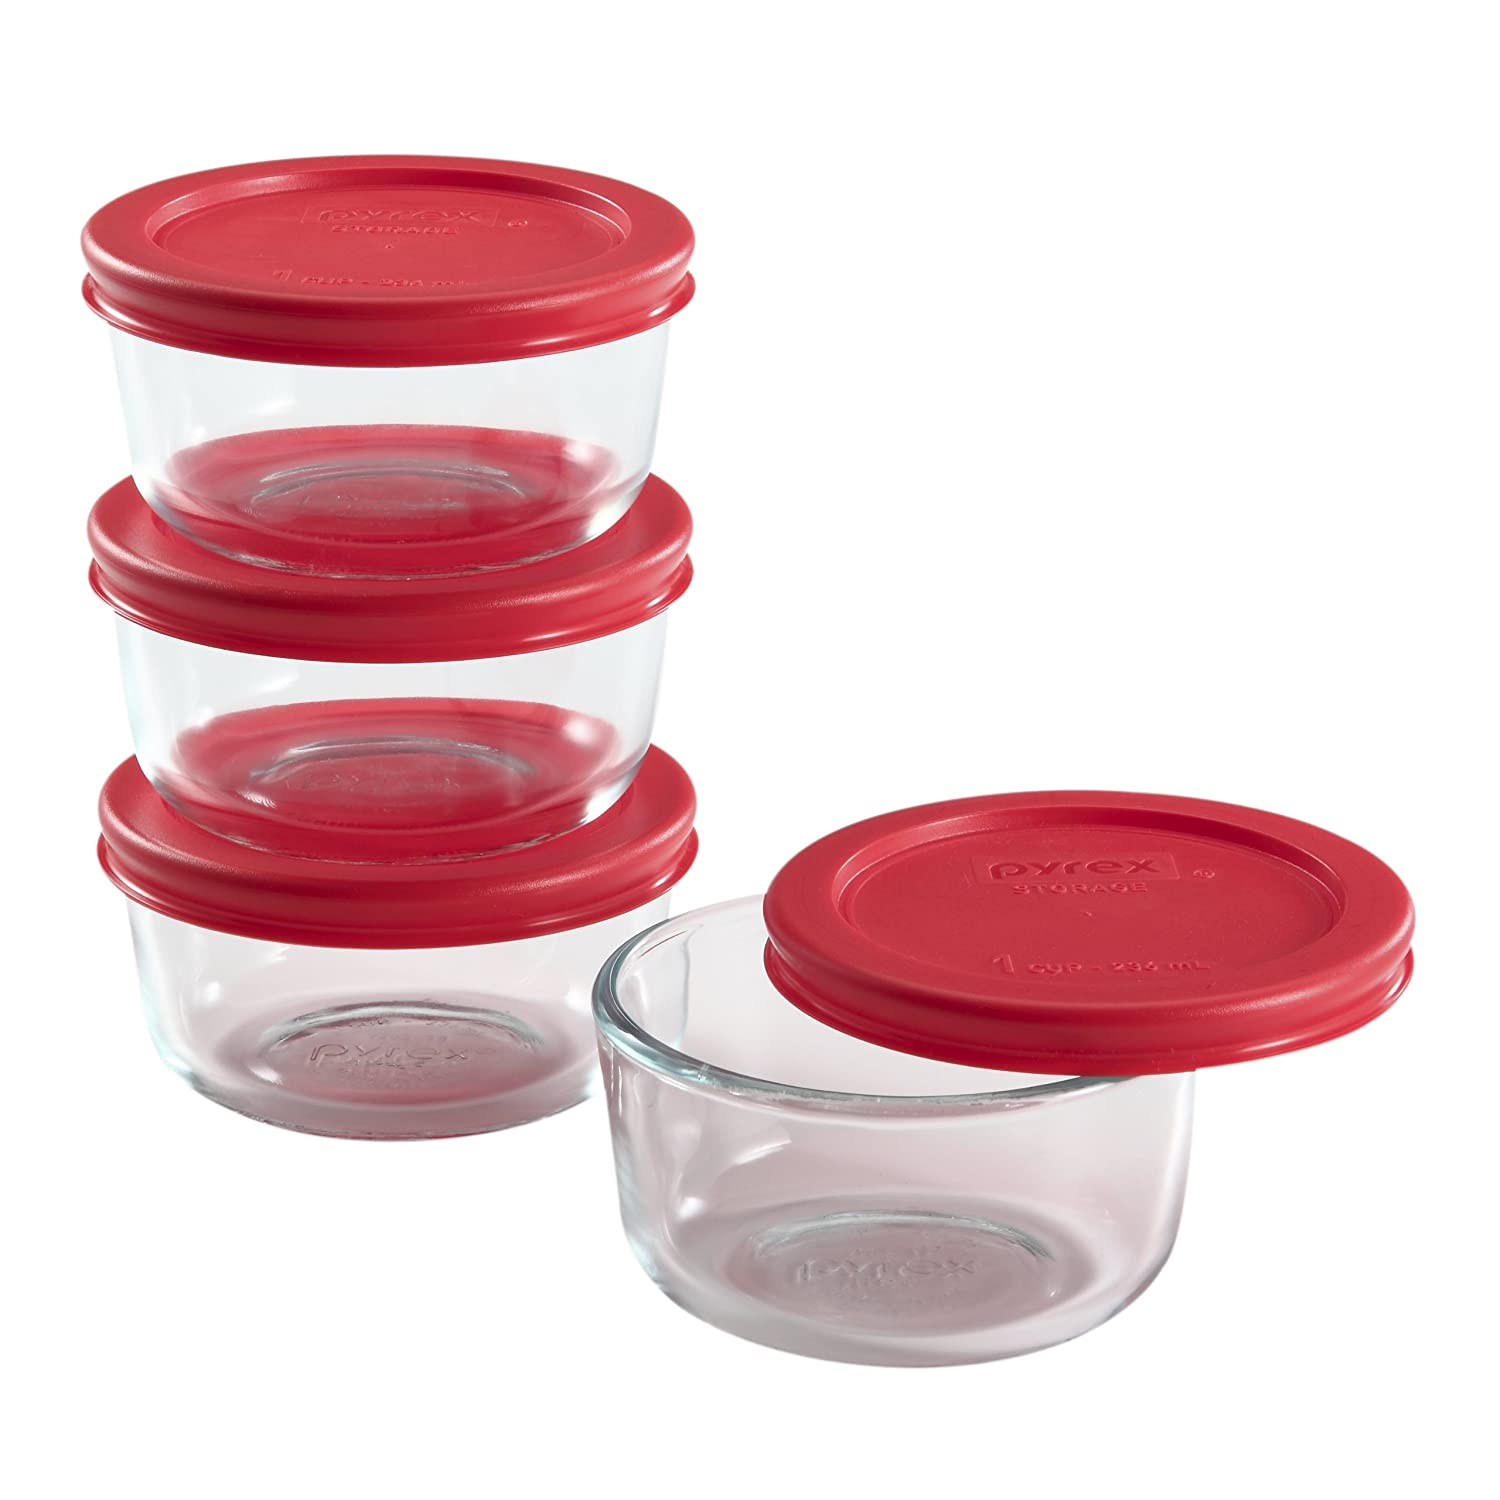 Pyrex Simply Store 8-Piece Glass Food Storage Set (4 vessels and 4 lids)